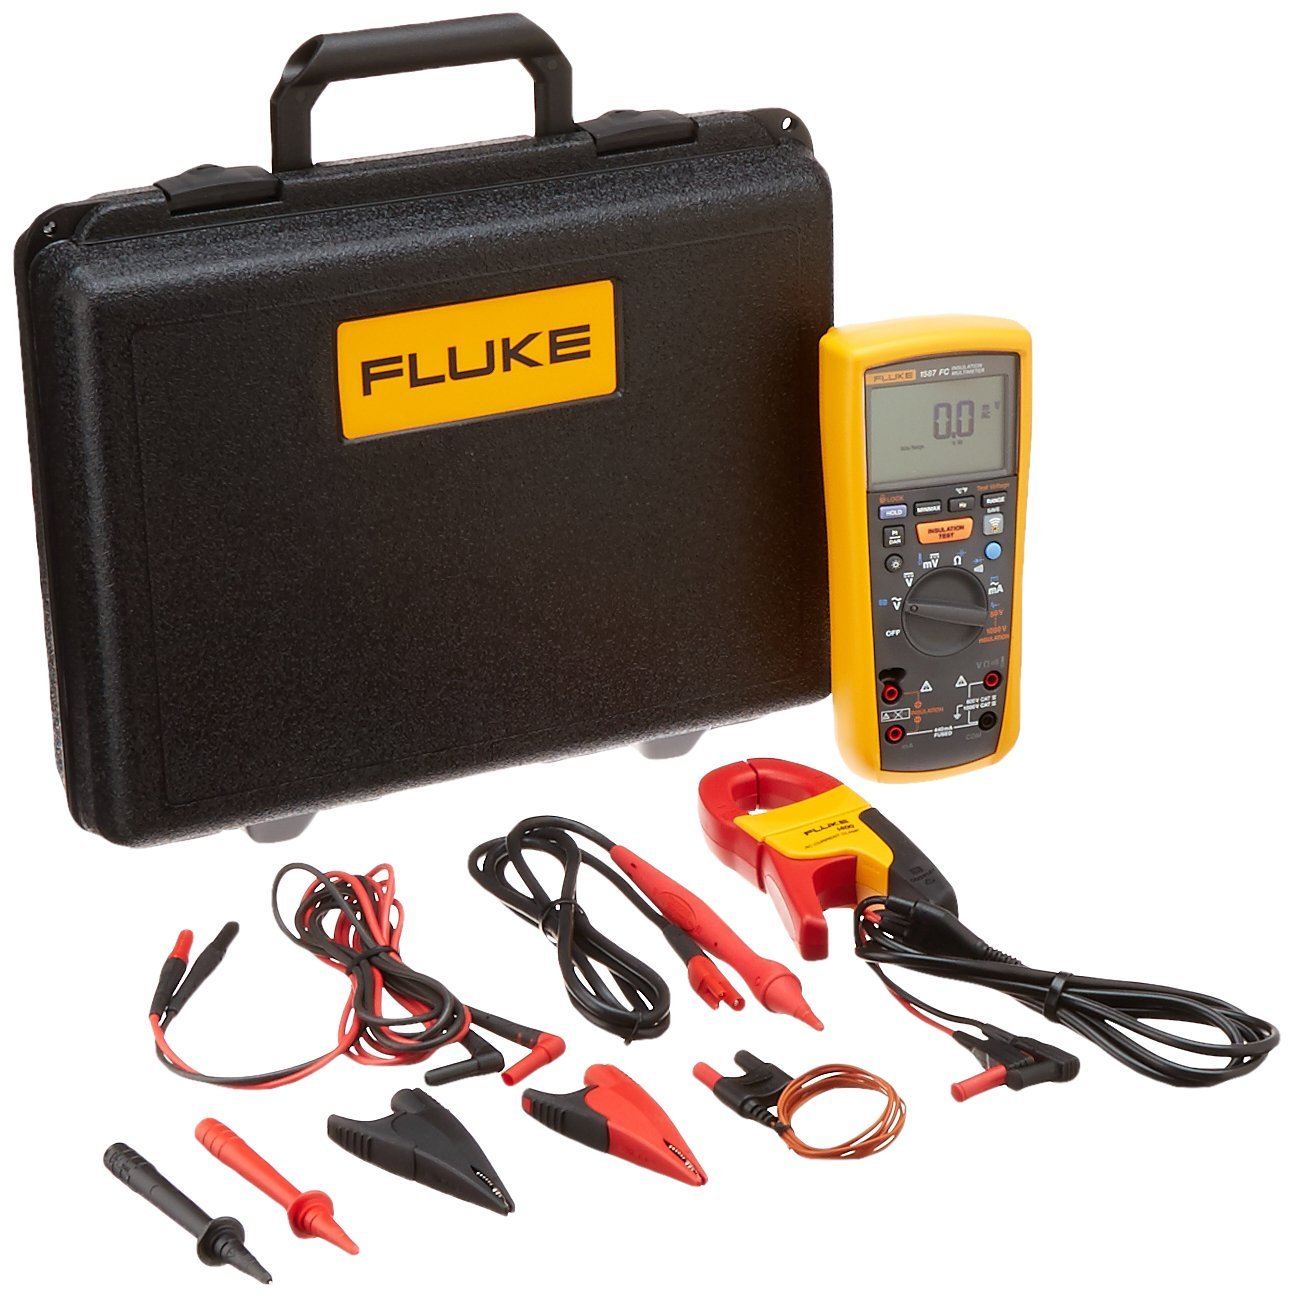 Fluke 1587/I400 FC 2-In-1 Insulation Multimeter With Clamp